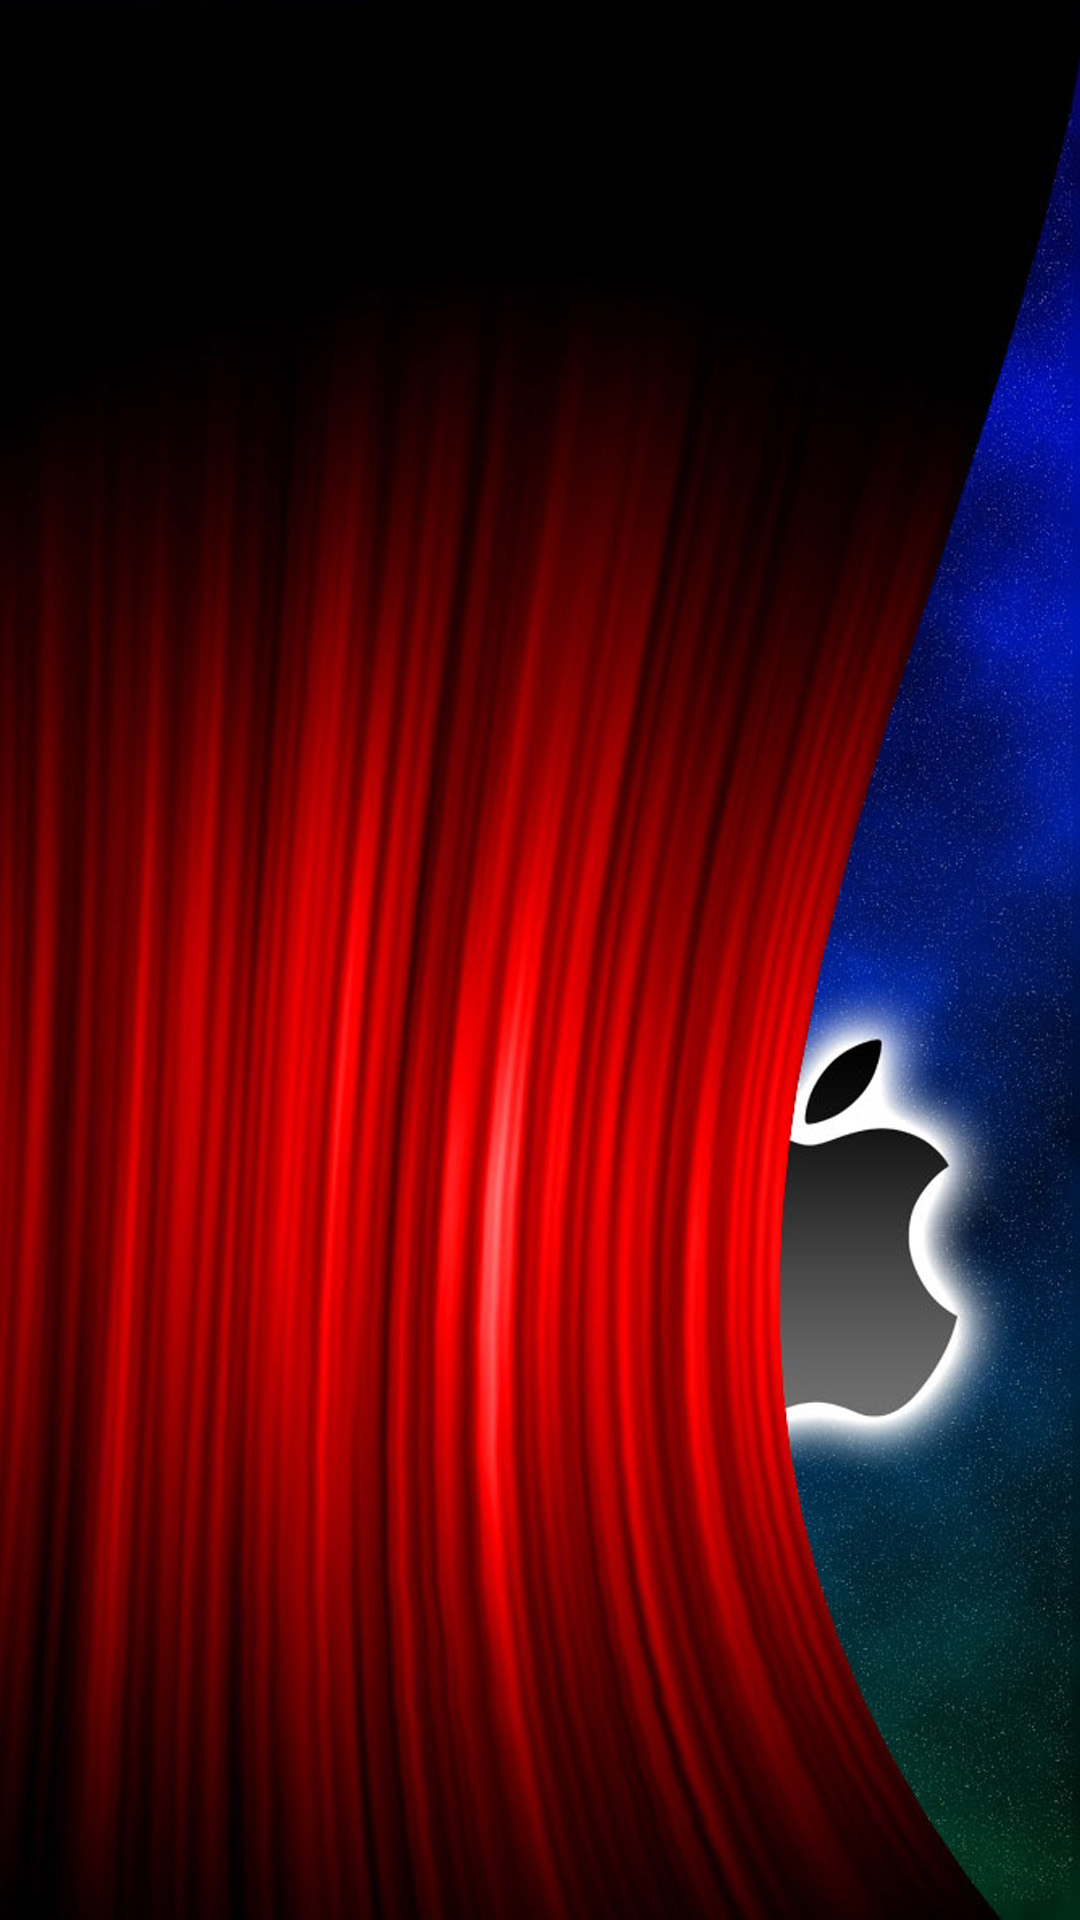 iOS Apple Behind The Screen Smartphone Wallpapers HD